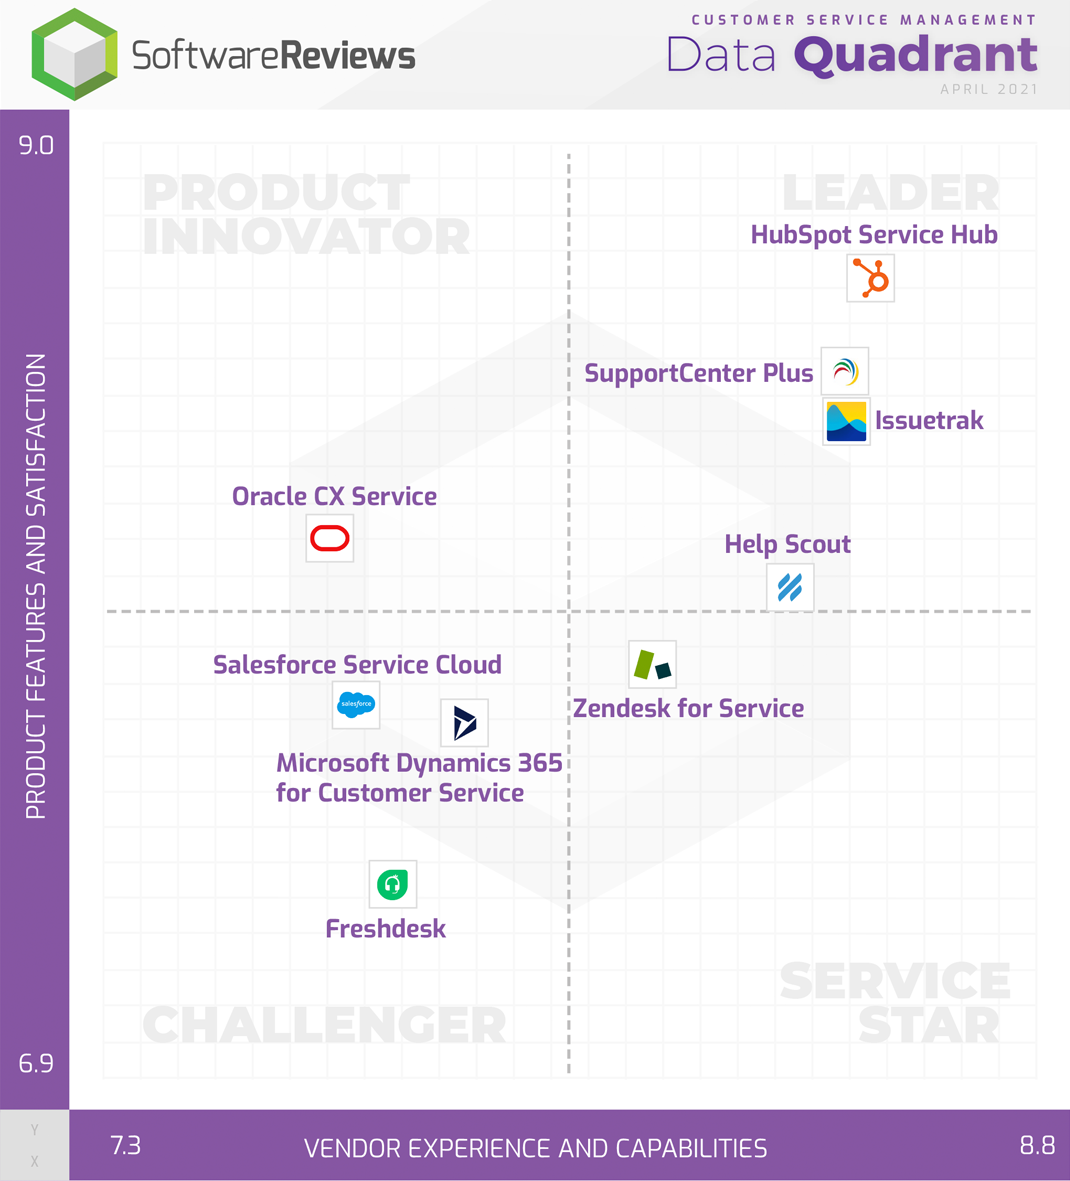 HubSpot Service Hub is the leader in SoftwareReviews